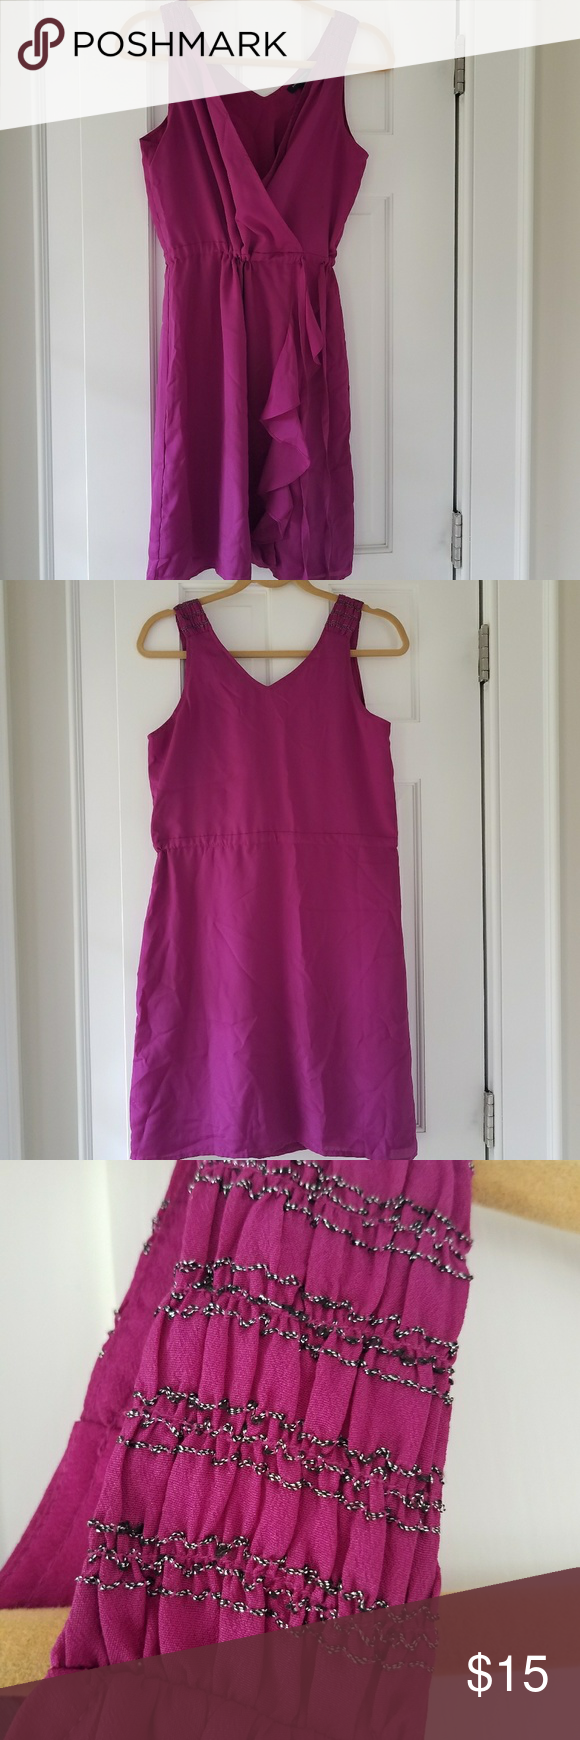 EUC Banana Republic Tank dress Super easy, cinch style. Can ne kept loose or cinched for tighter waist. Small detail on shoulders.  Ruffle front of skirt bottom.  Nice Fuscia color. Banana Republic Dresses Midi